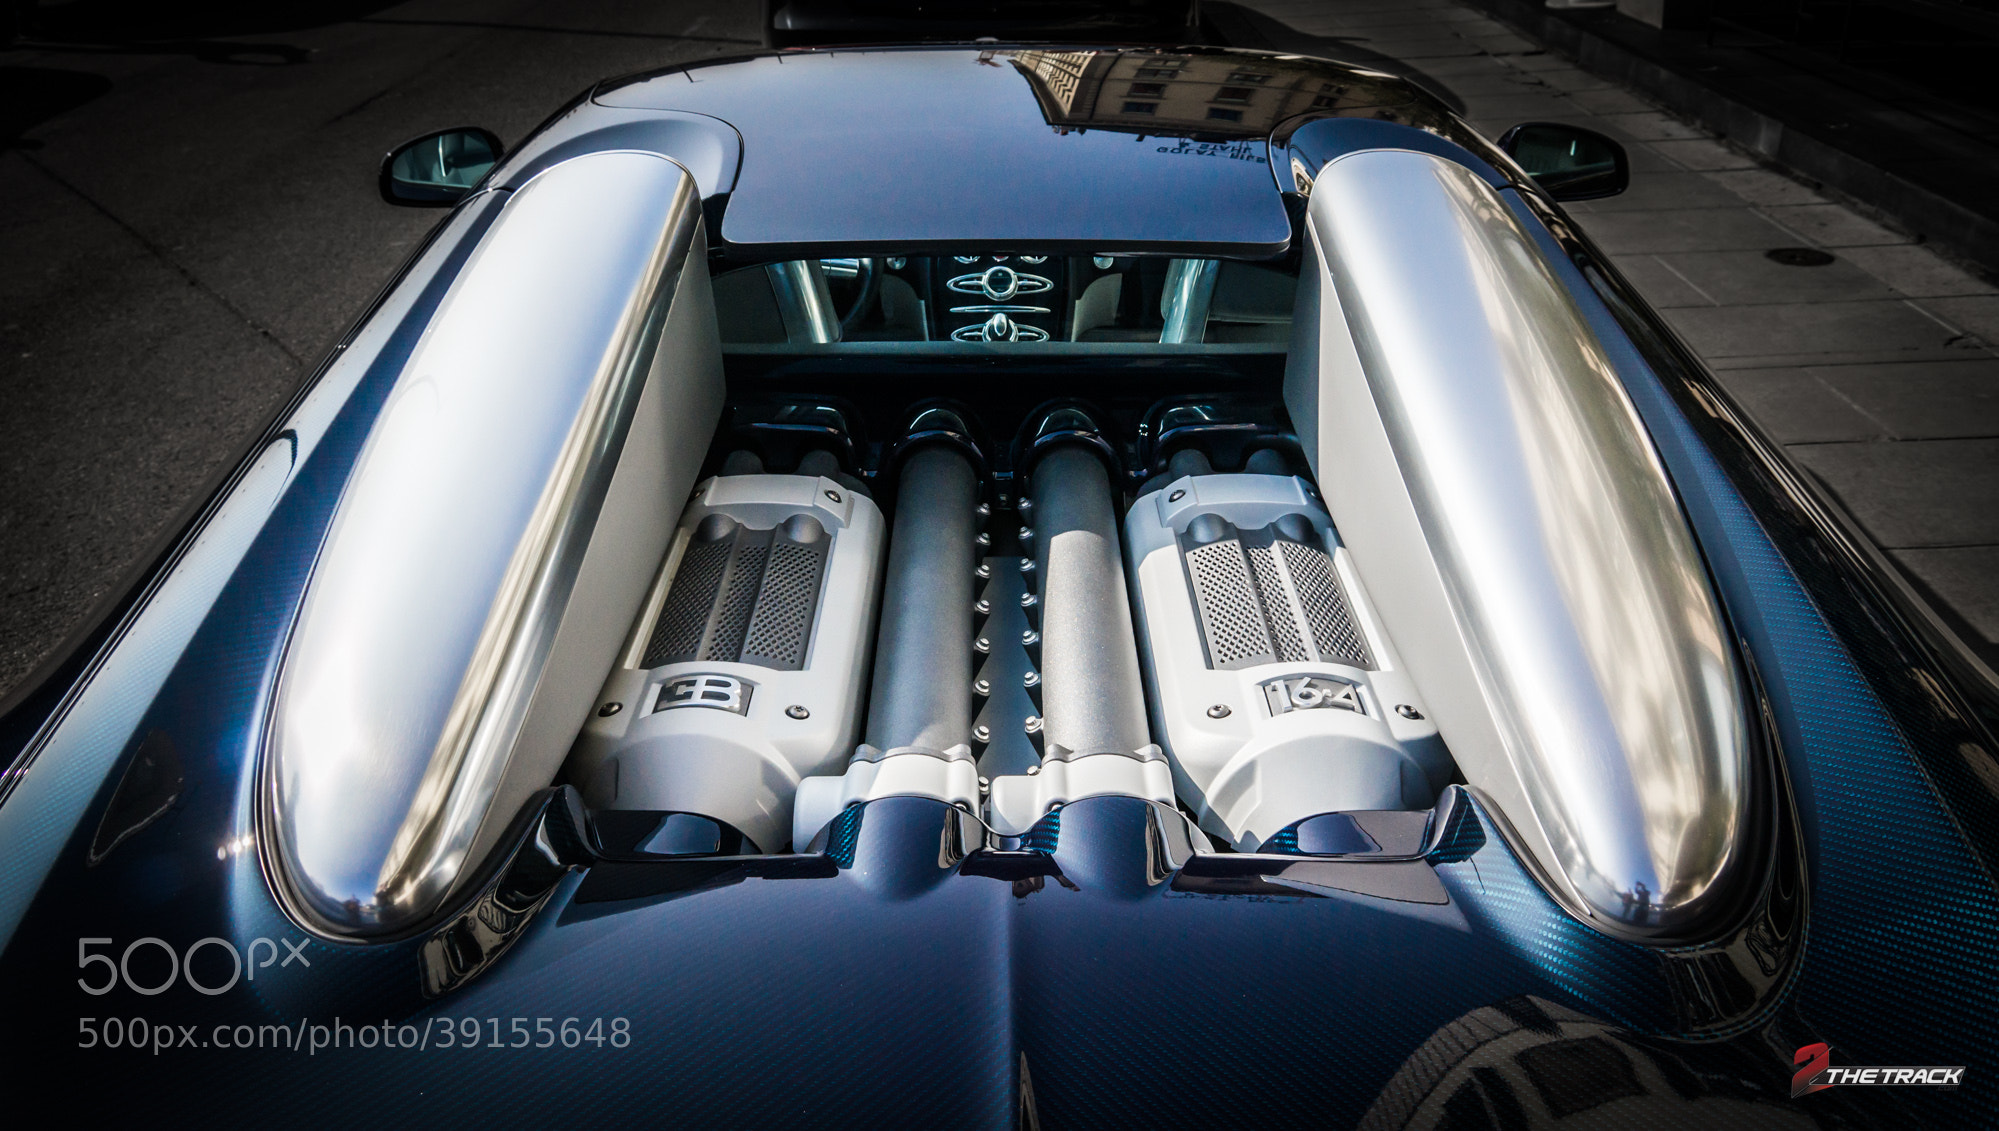 bugatti veyron grand sport engine bay by tom heuving 500px. Black Bedroom Furniture Sets. Home Design Ideas